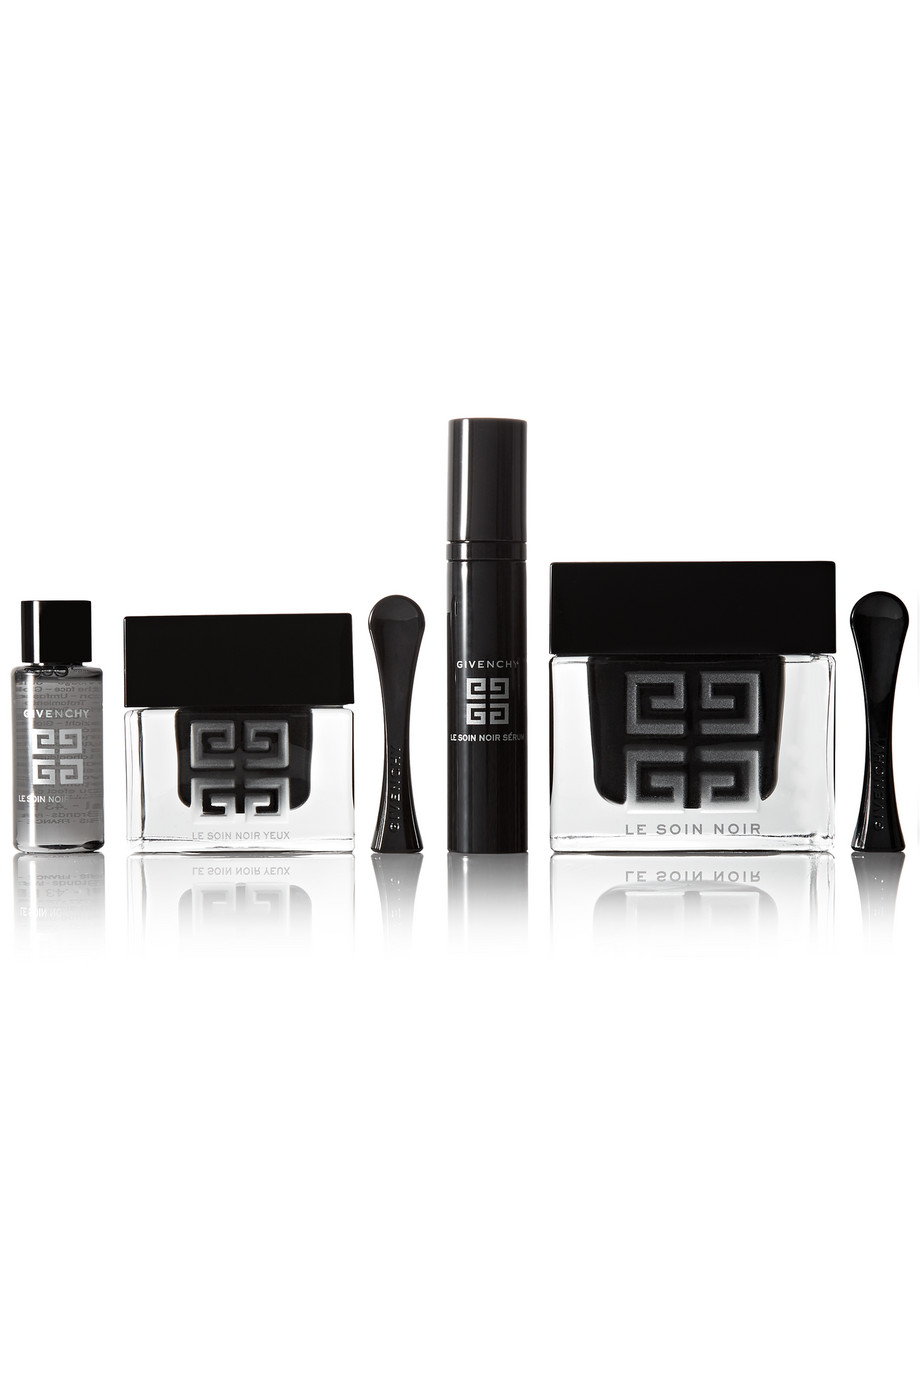 Le Soin Noir Deluxe Set, by Givenchy Beauty